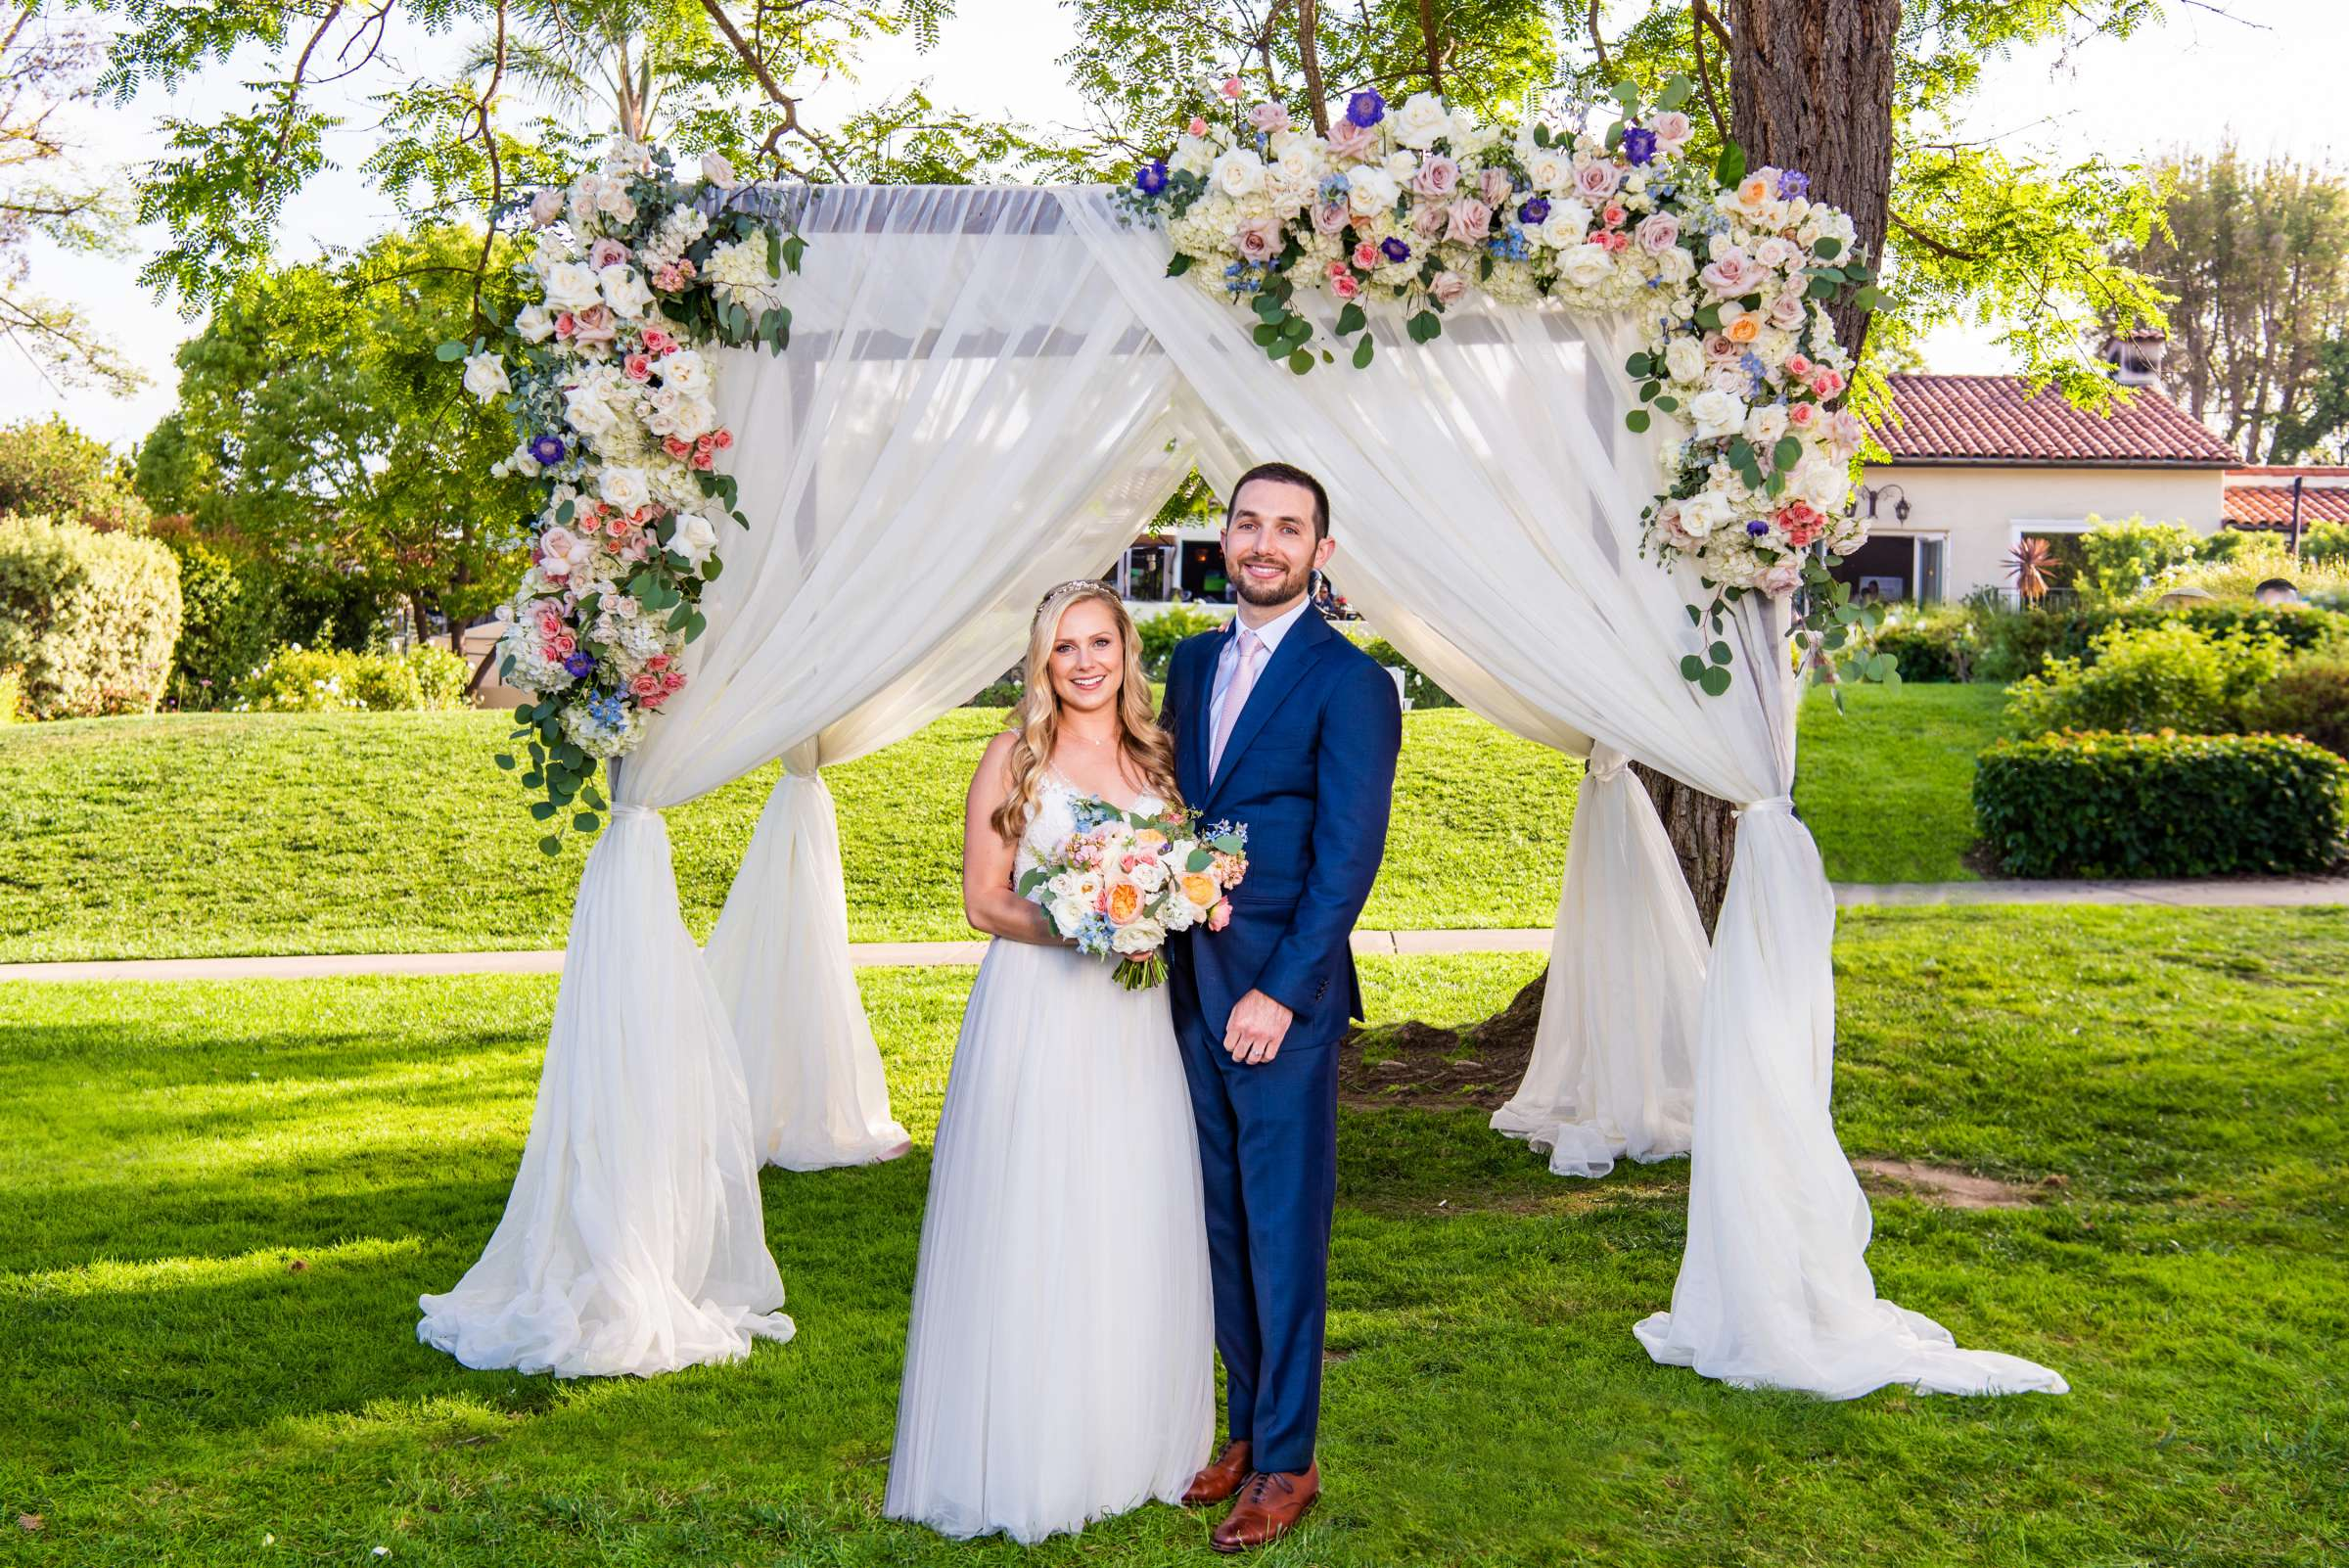 ada67d6438 Parker and Posies   San Diego Photographer - True Photography